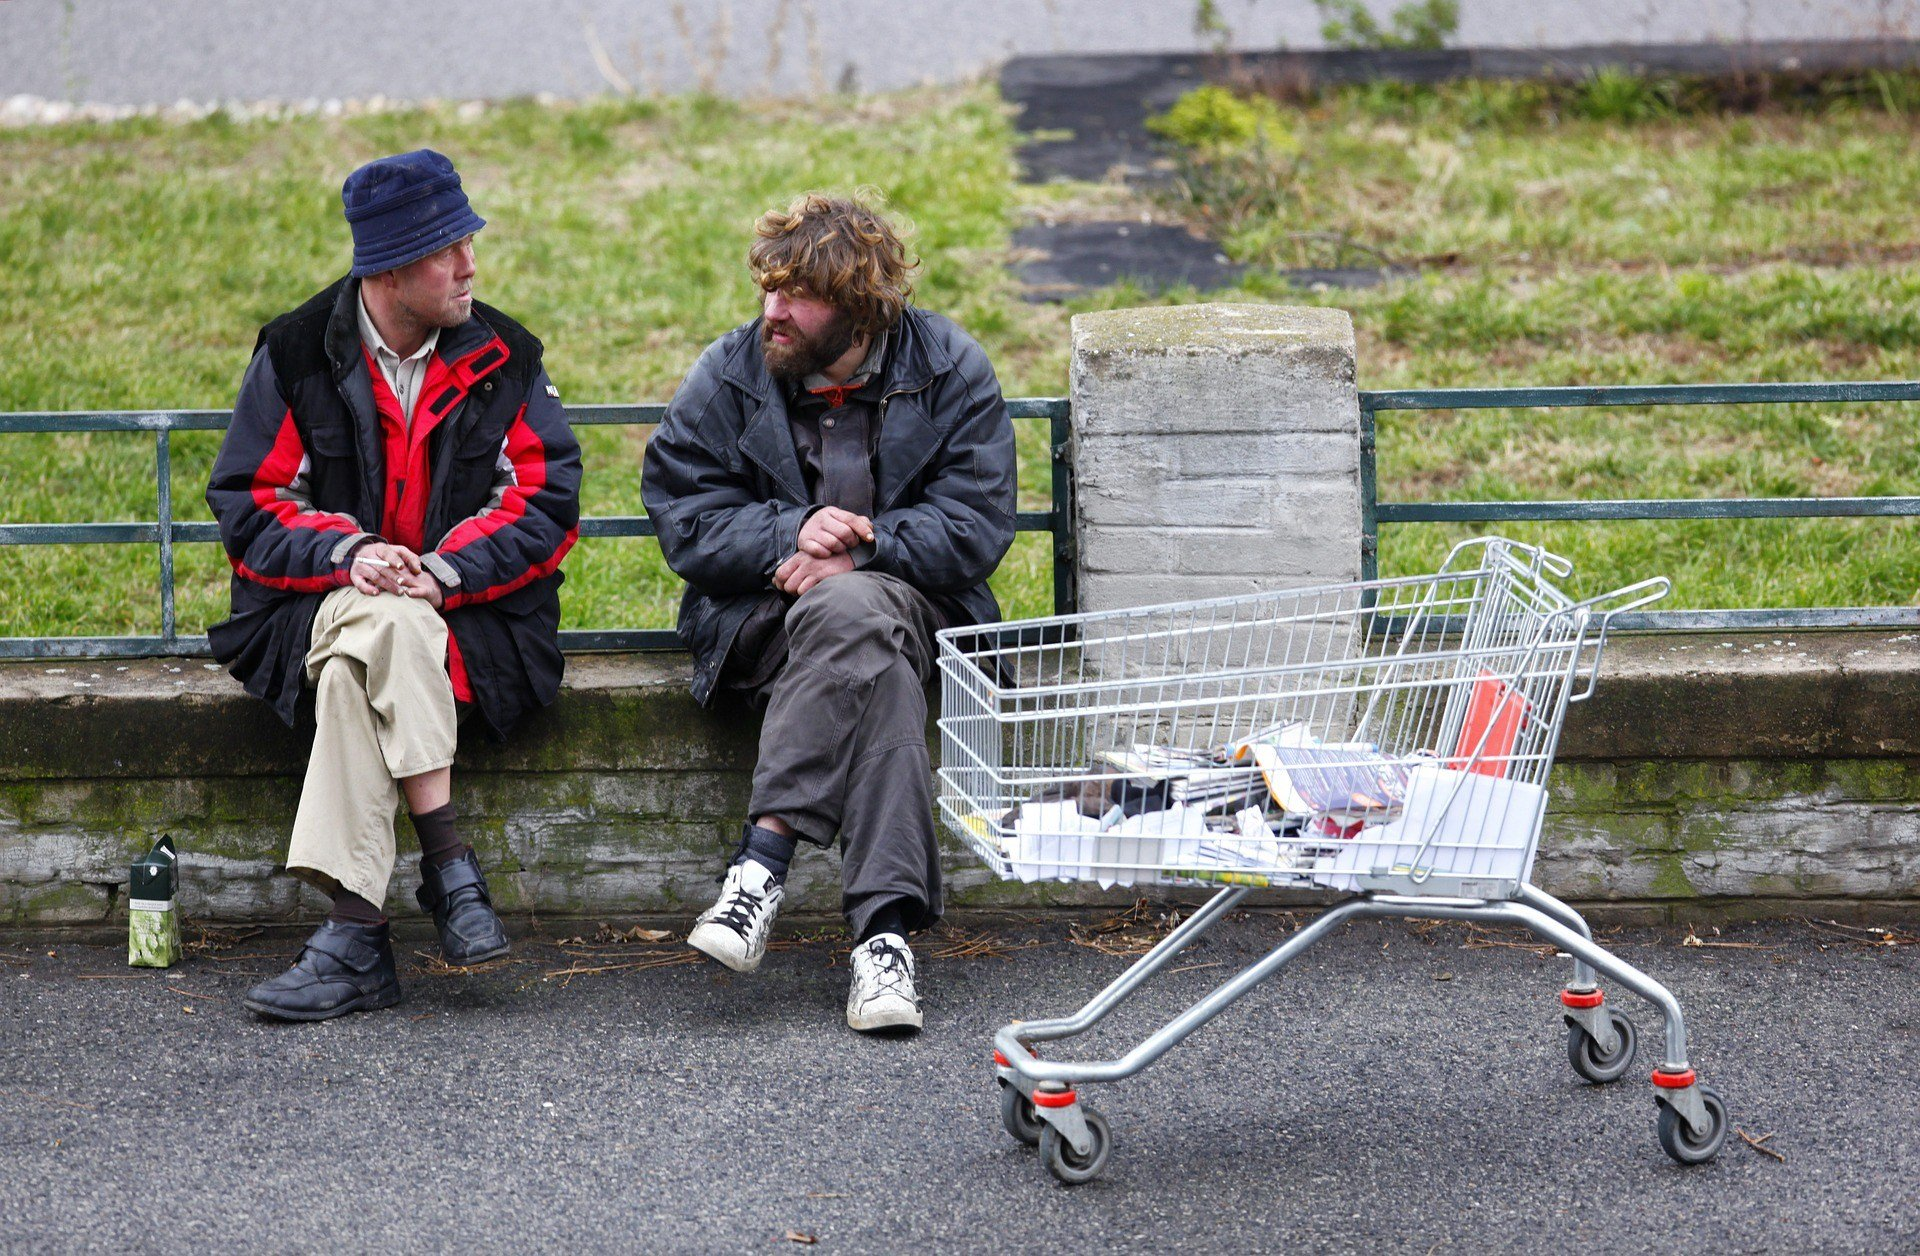 Two homeless men talking and smoking.